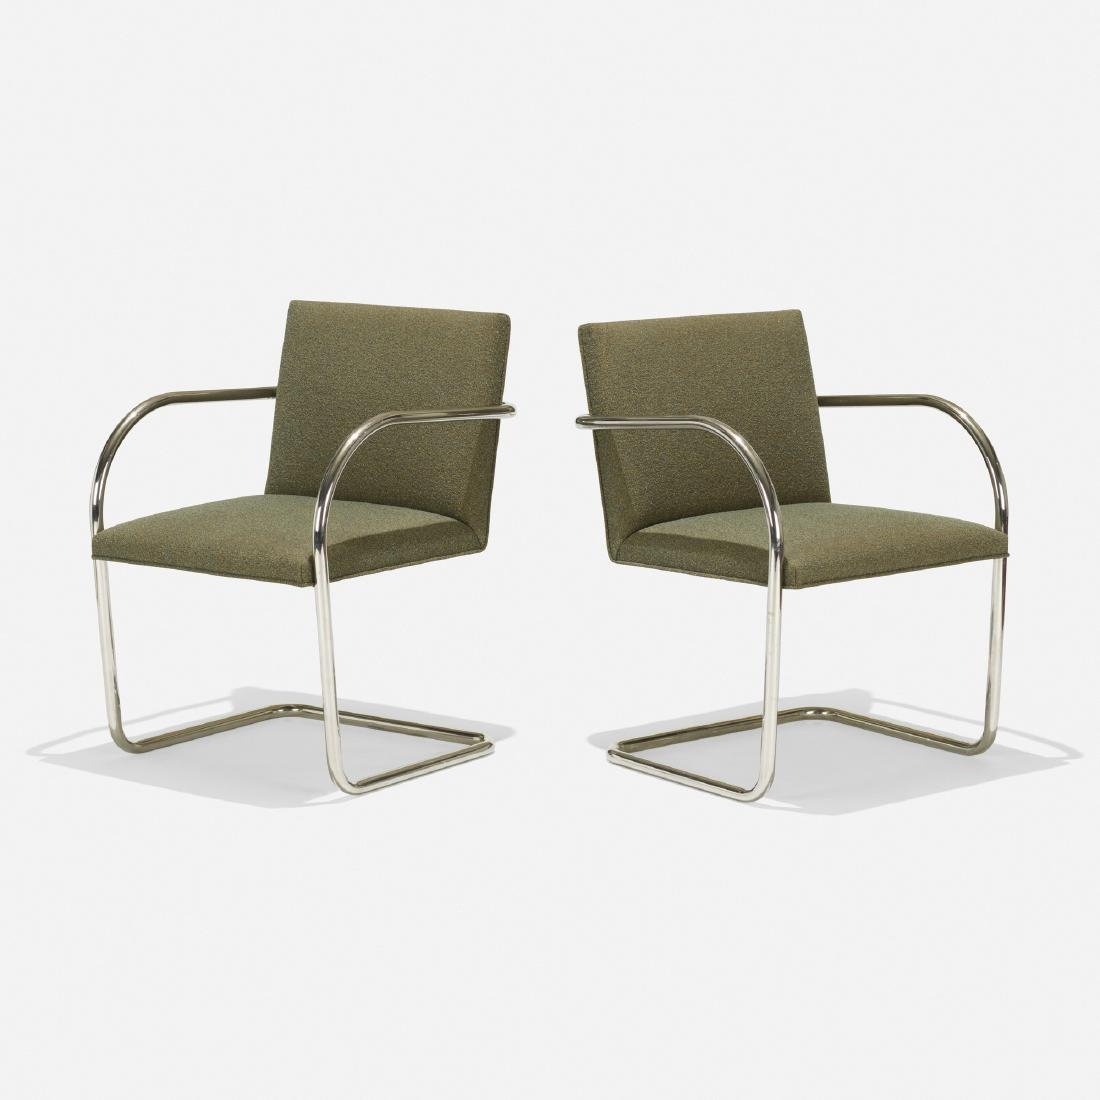 Ludwig Mies van der Rohe, Brno chairs, pair